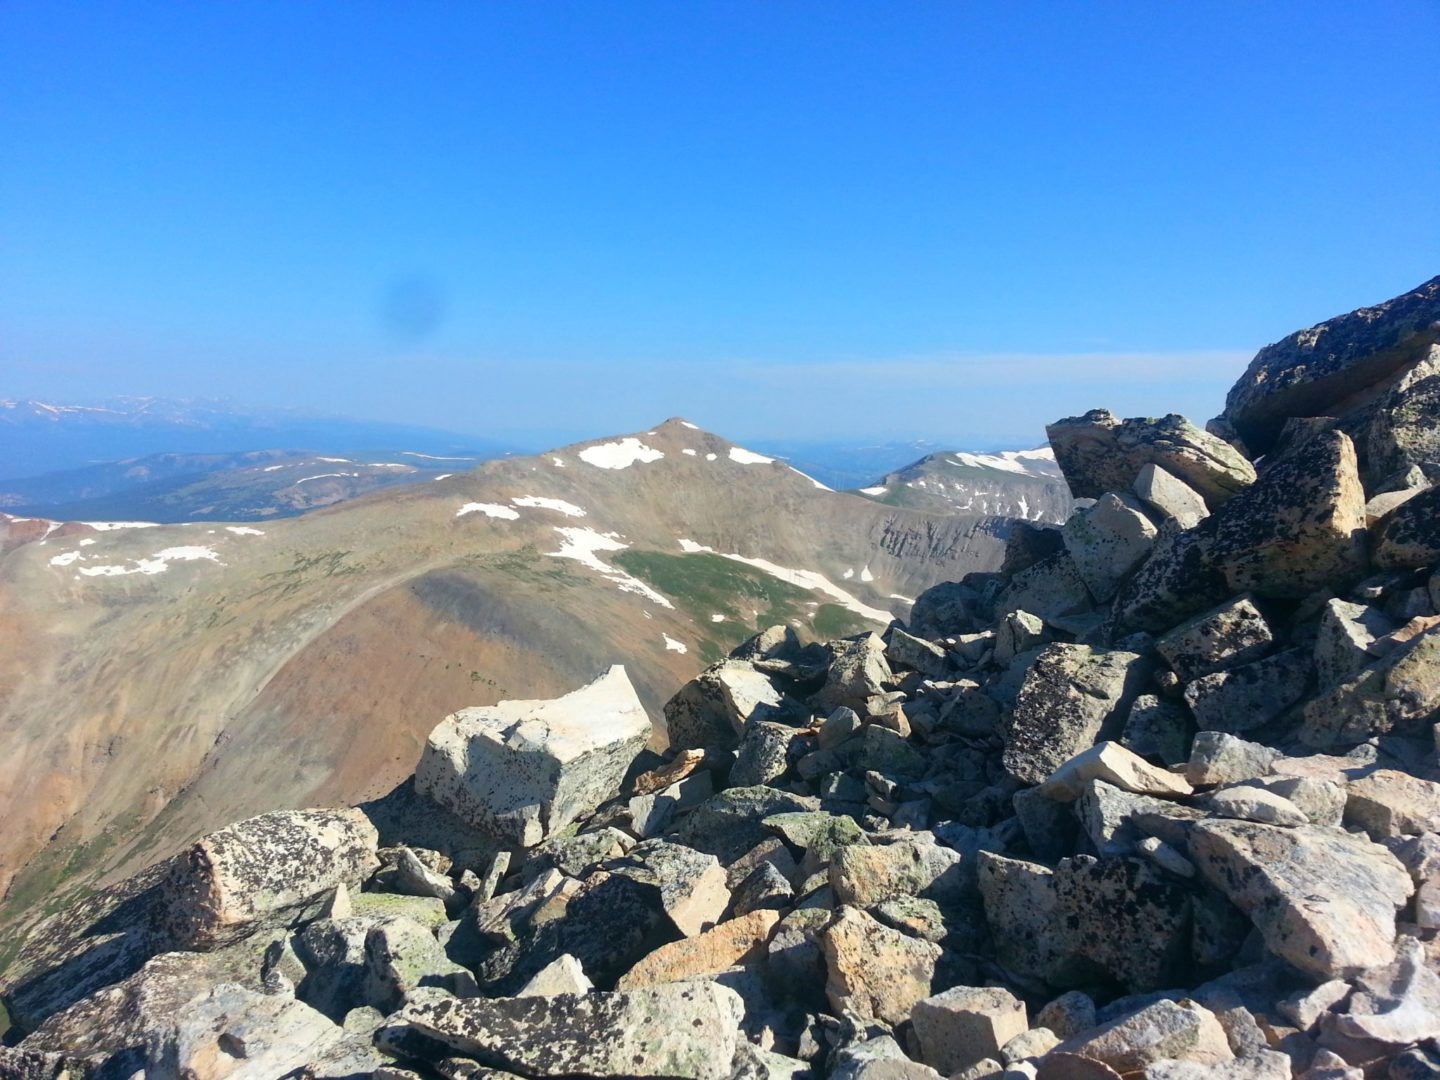 Looking over the ridge at Dyer Mountain (13,862')